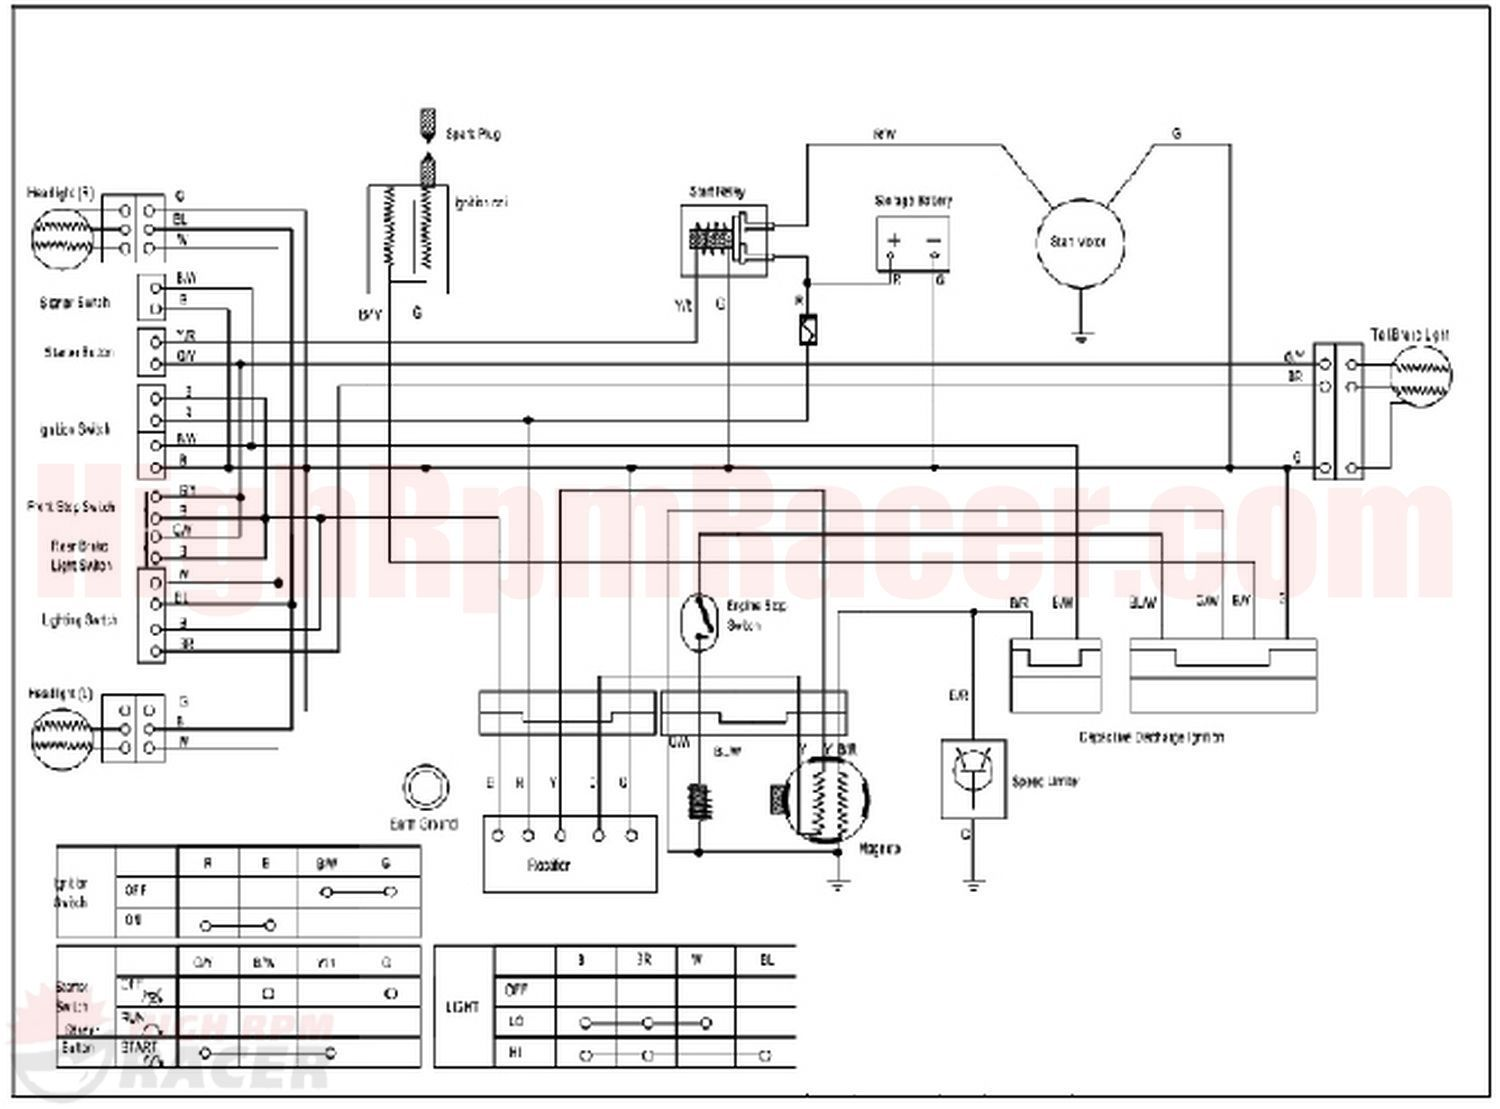 287eced1a872c94c2a3a13a8b8f91a8c honda 90 atv wiring diagram honda wiring diagrams instruction Basic Electrical Wiring Diagrams at gsmx.co